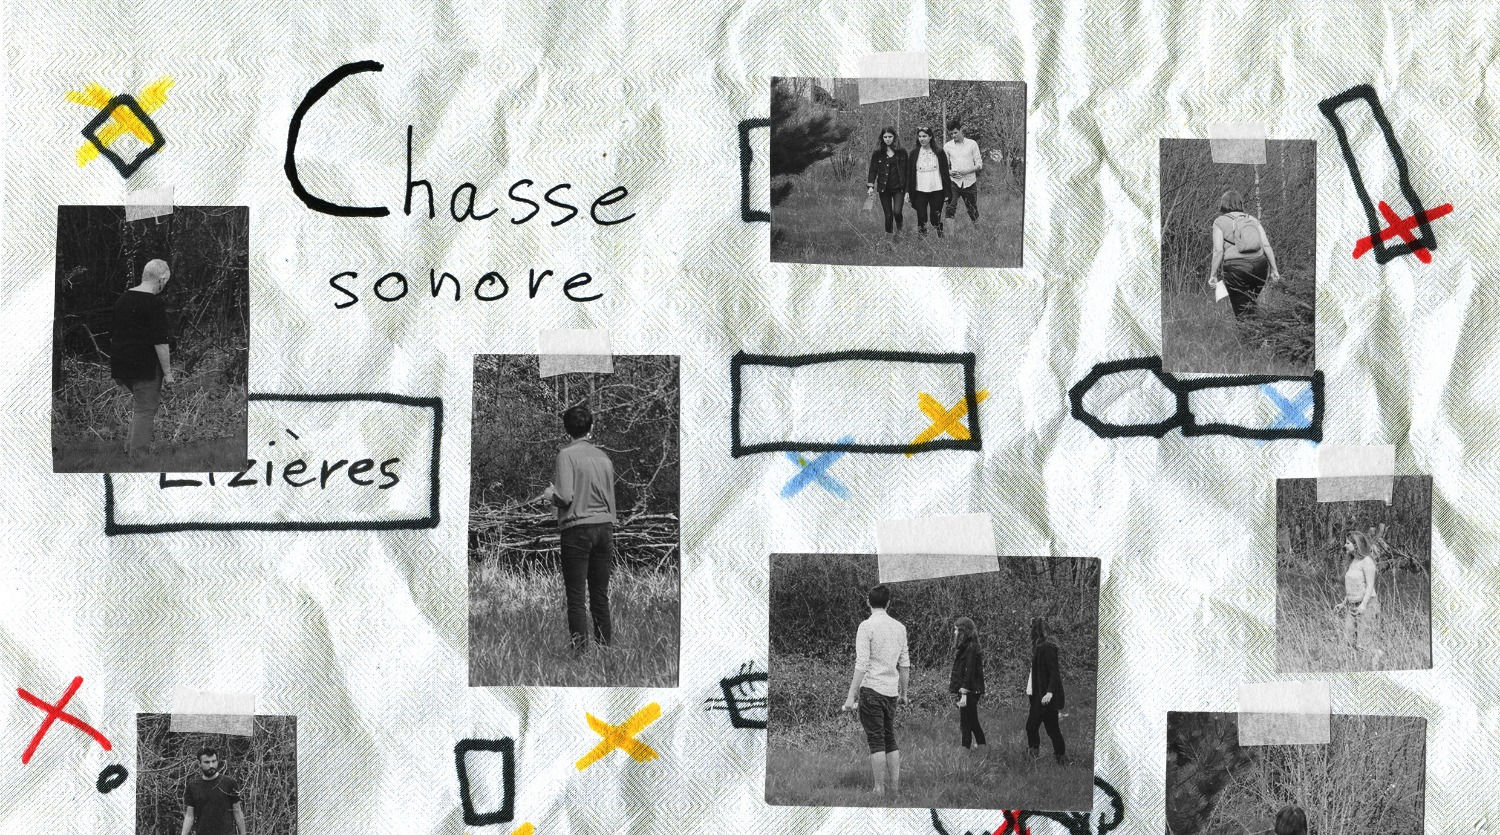 Chasse sonore